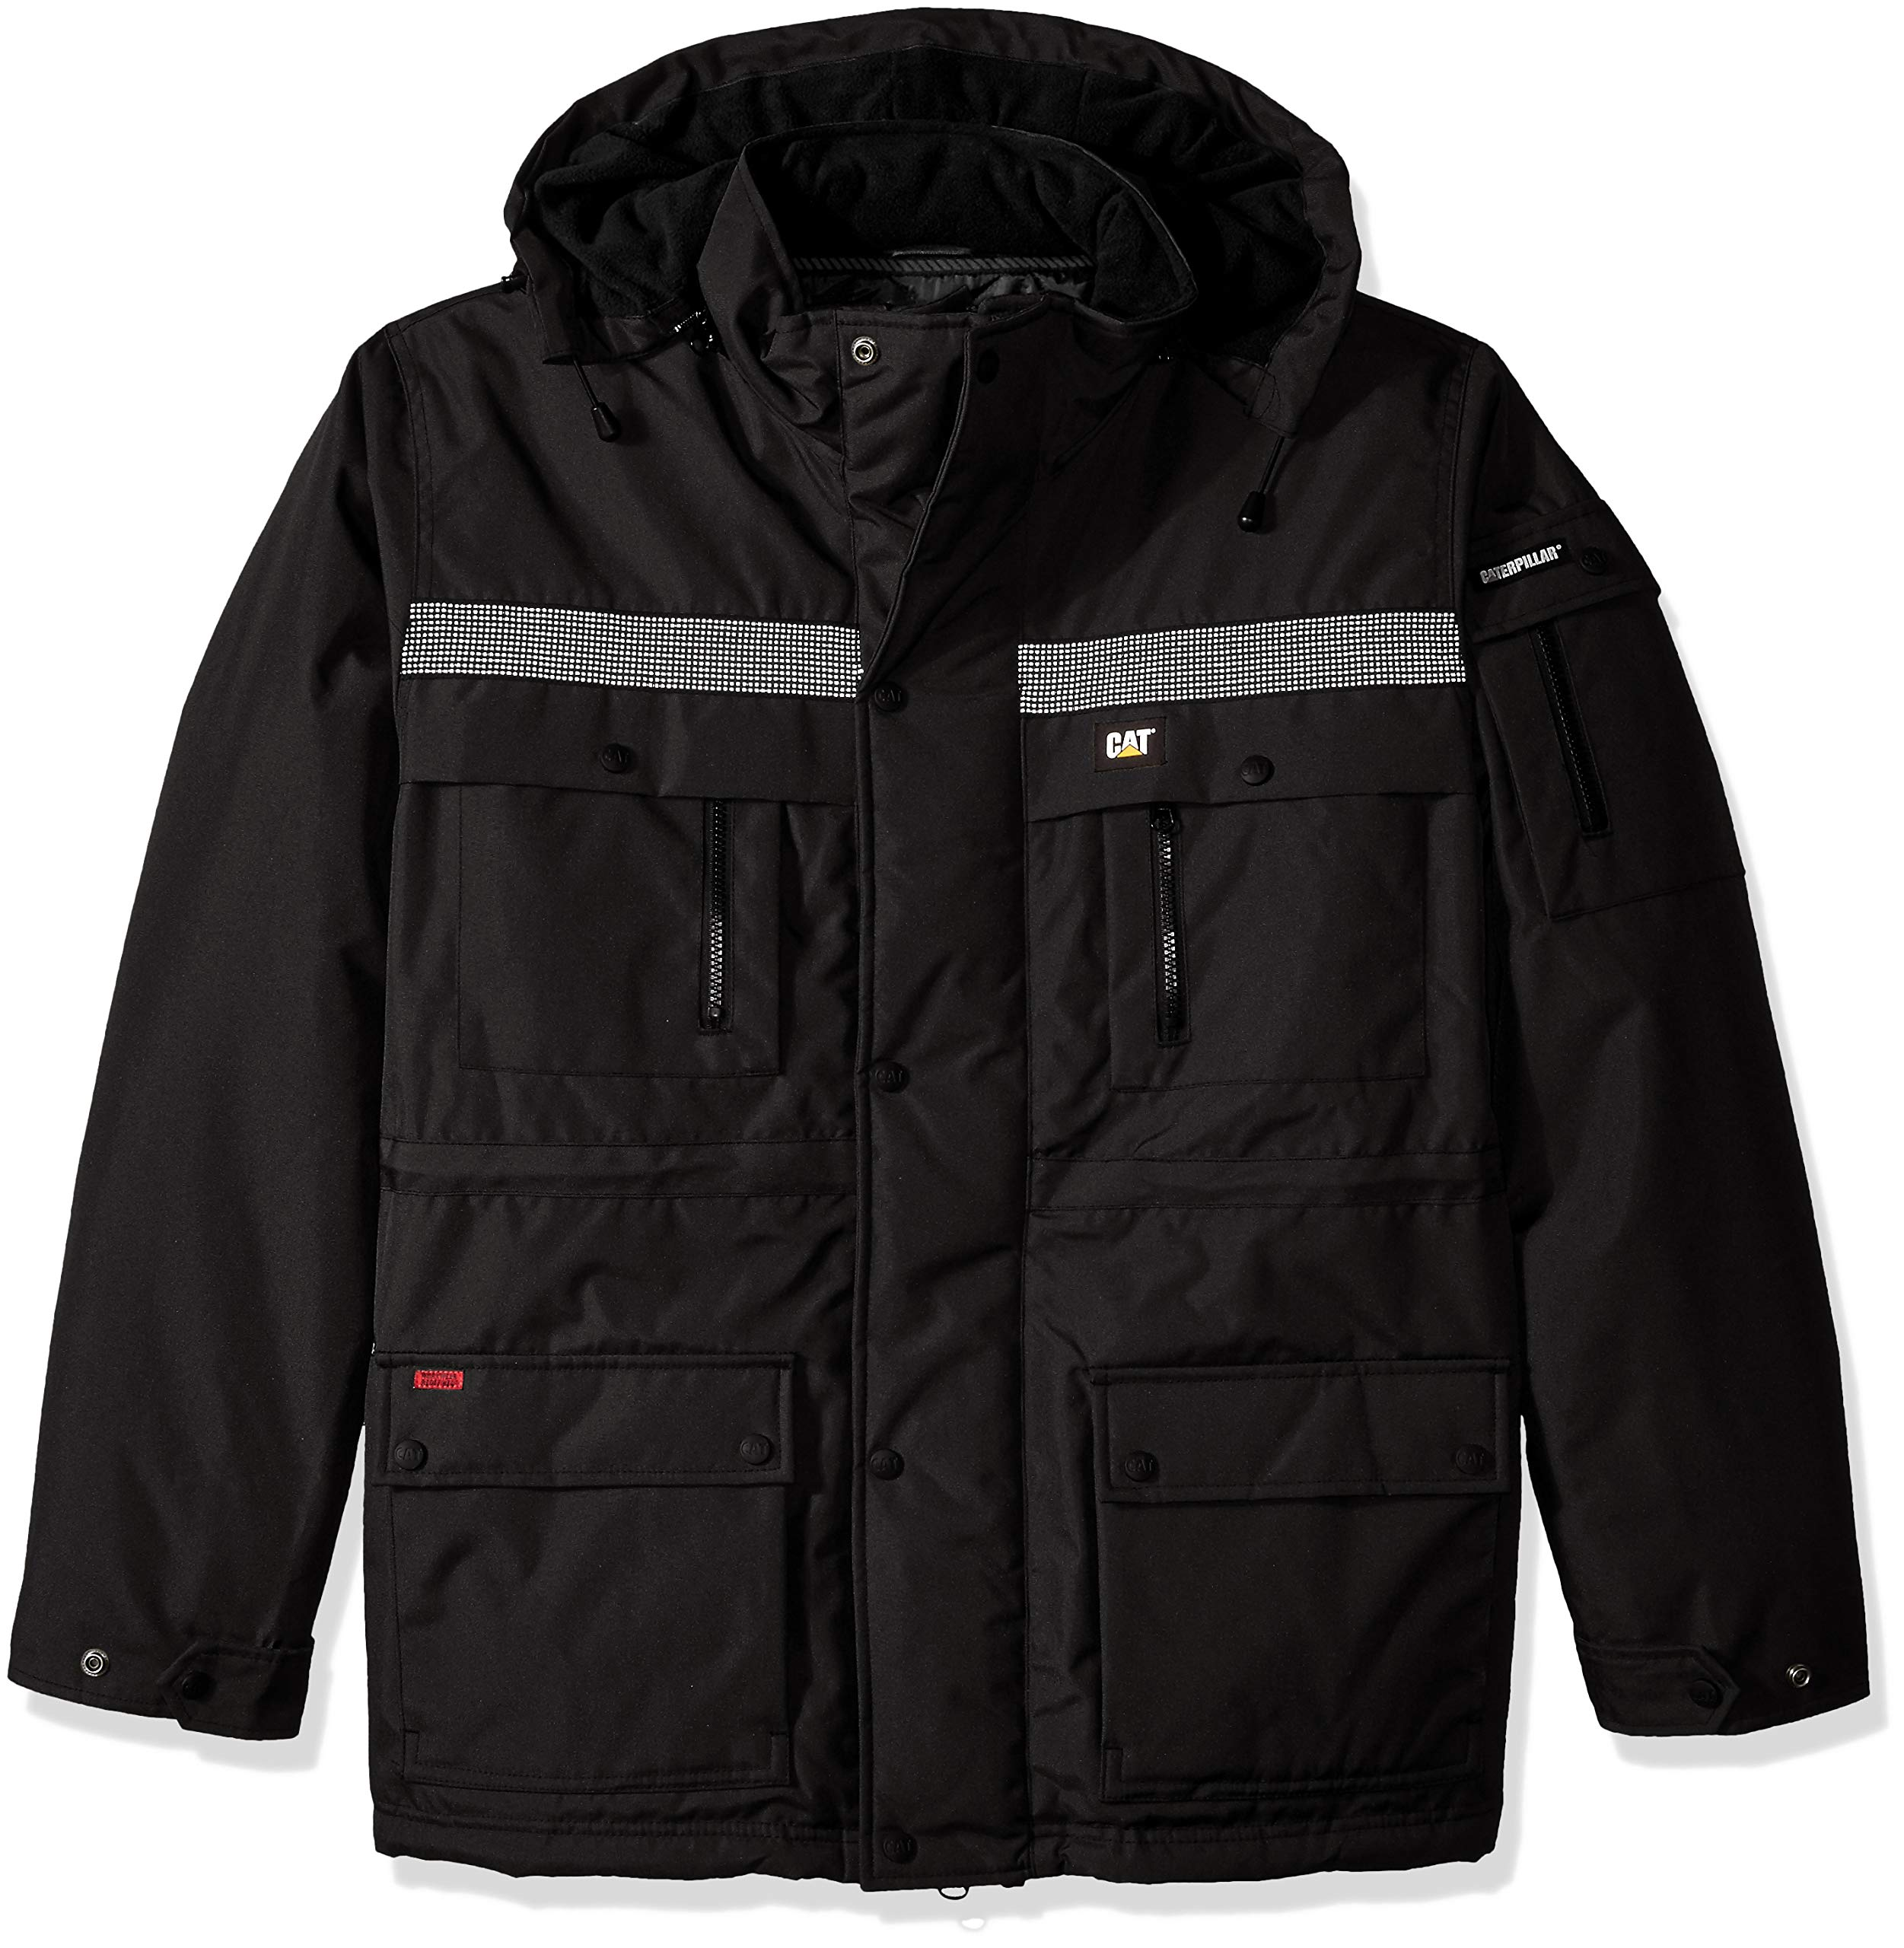 Caterpillar Men's Heavy Insulated Parka (Regular and Big & Tall Sizes), Black, Large by Caterpillar